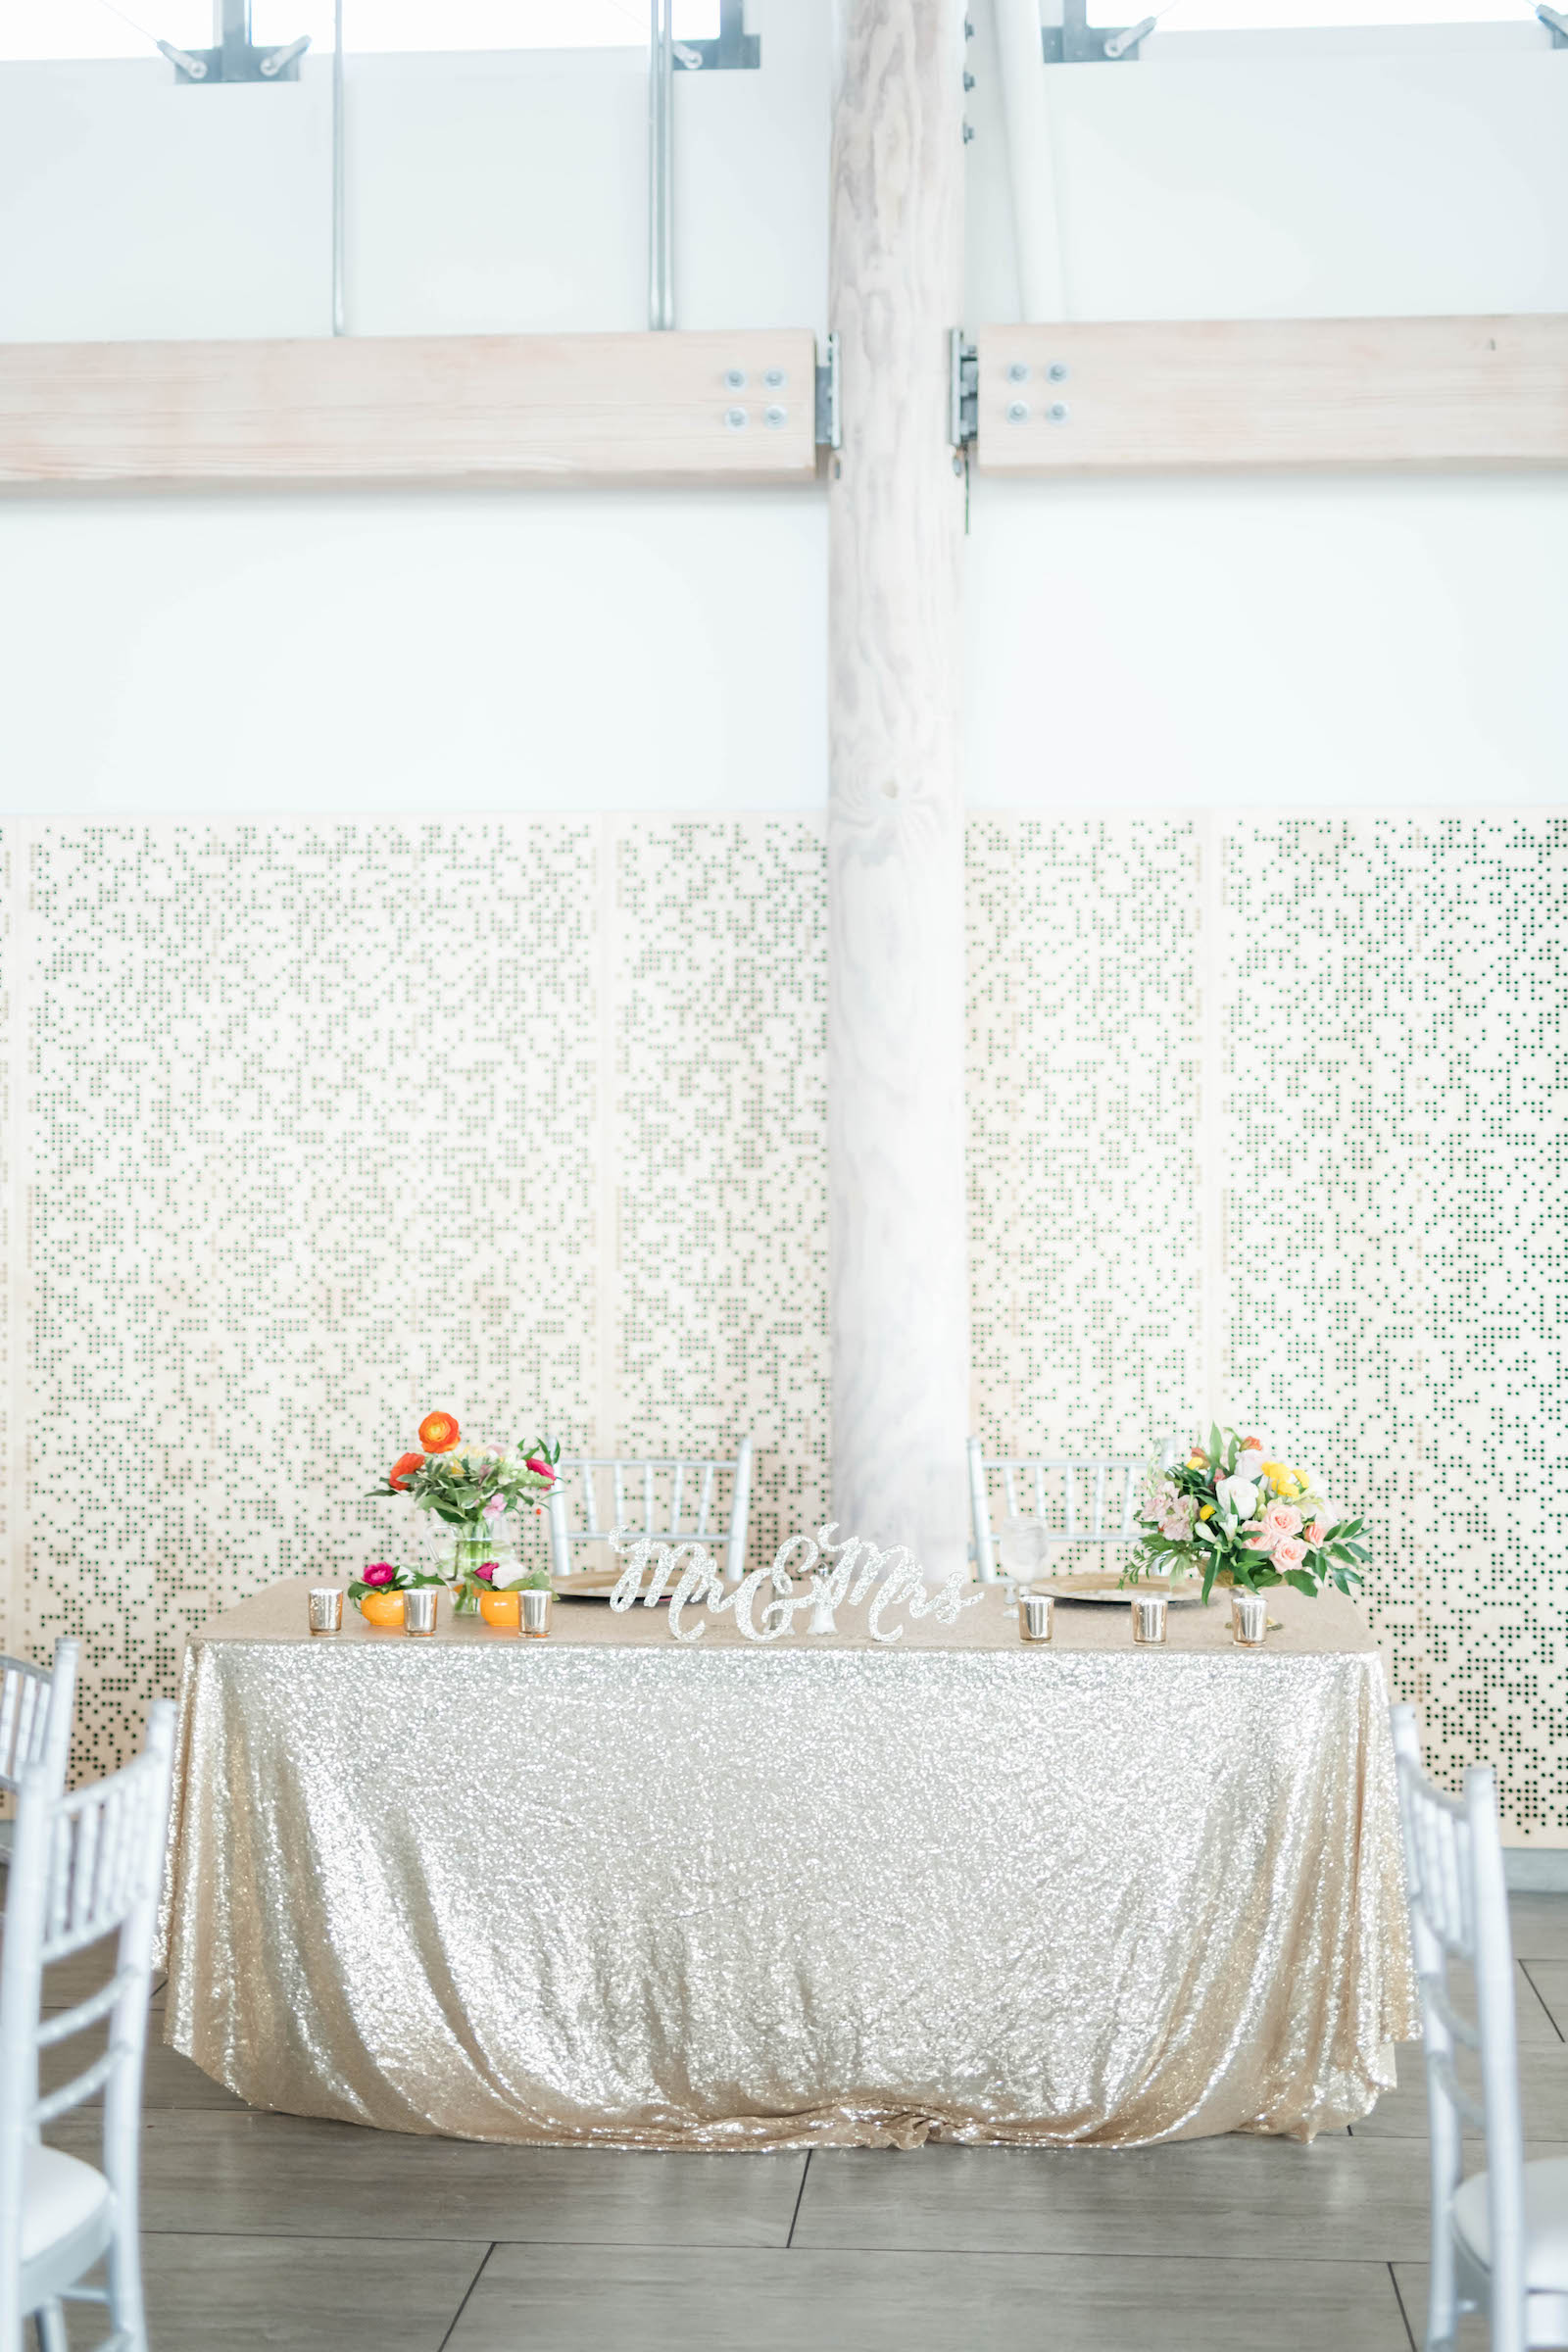 Tropical Elegant Wedding Reception Decor, Sweetheart Table with Gold Glitter Linen, Mr and Mrs Sign and Colorful Flower Bouquets | Tampa Bay Wedding Planner Coastal Coordinating